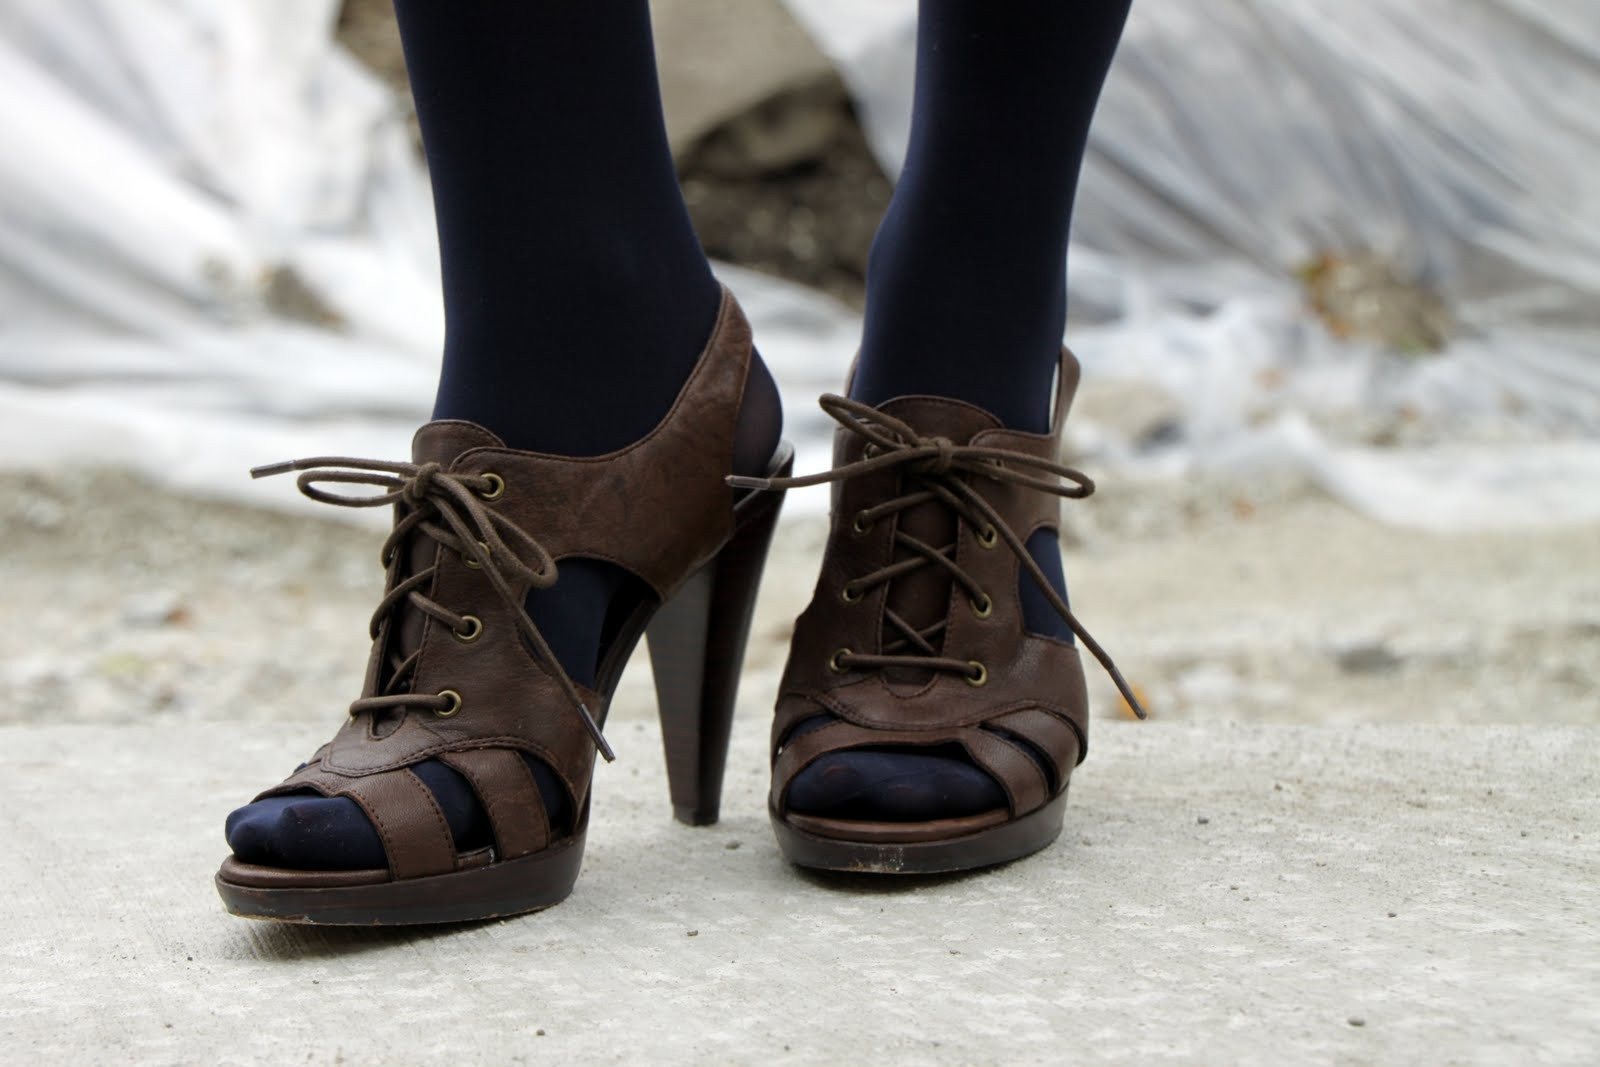 How to wear open-toed shoes with tights - Fashionmylegs